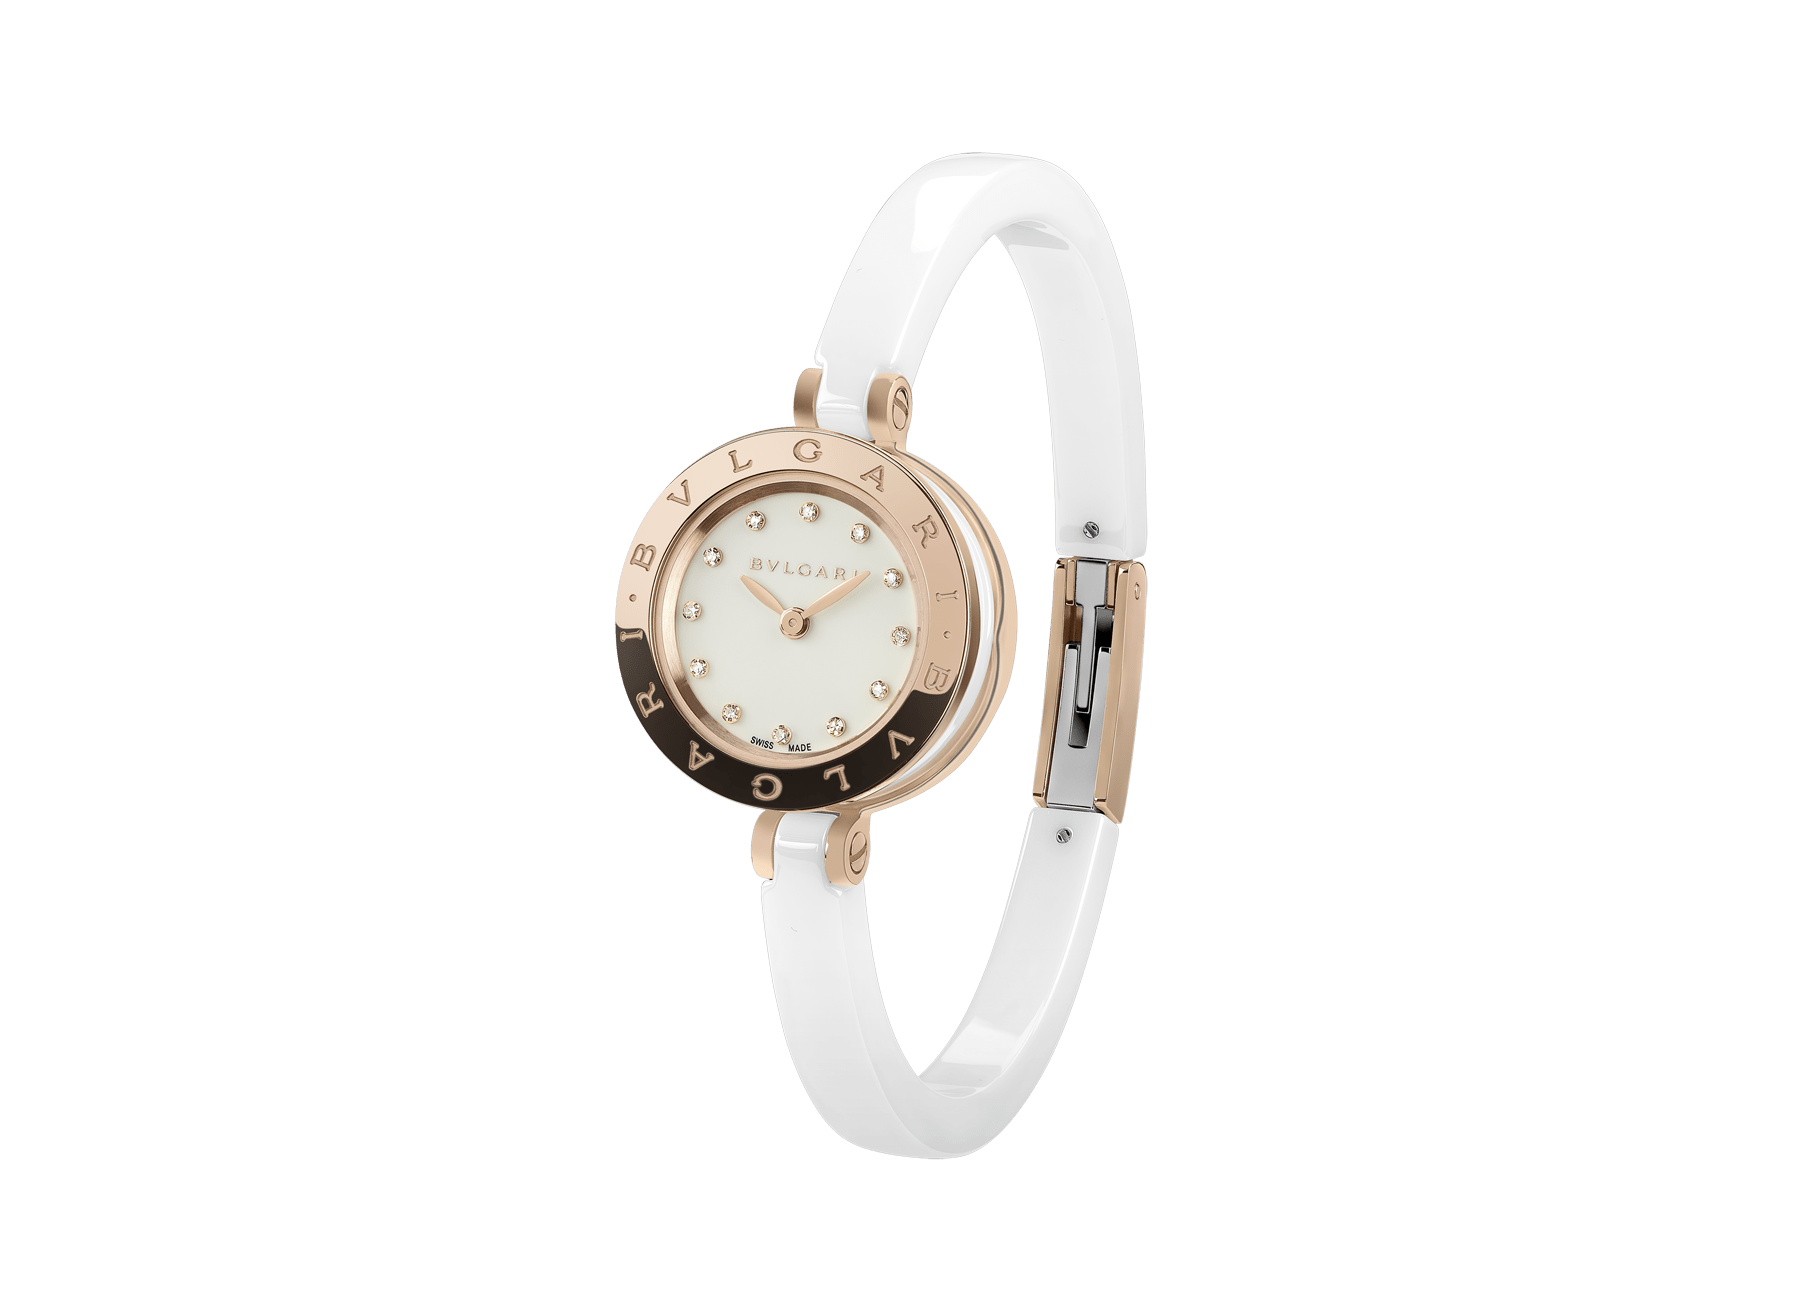 B.zero1 watch with 18 kt rose gold and white ceramic case, white lacquered dial set diamond indexes, white ceramic bangle and 18 kt rose gold clasp. 102174 image 1